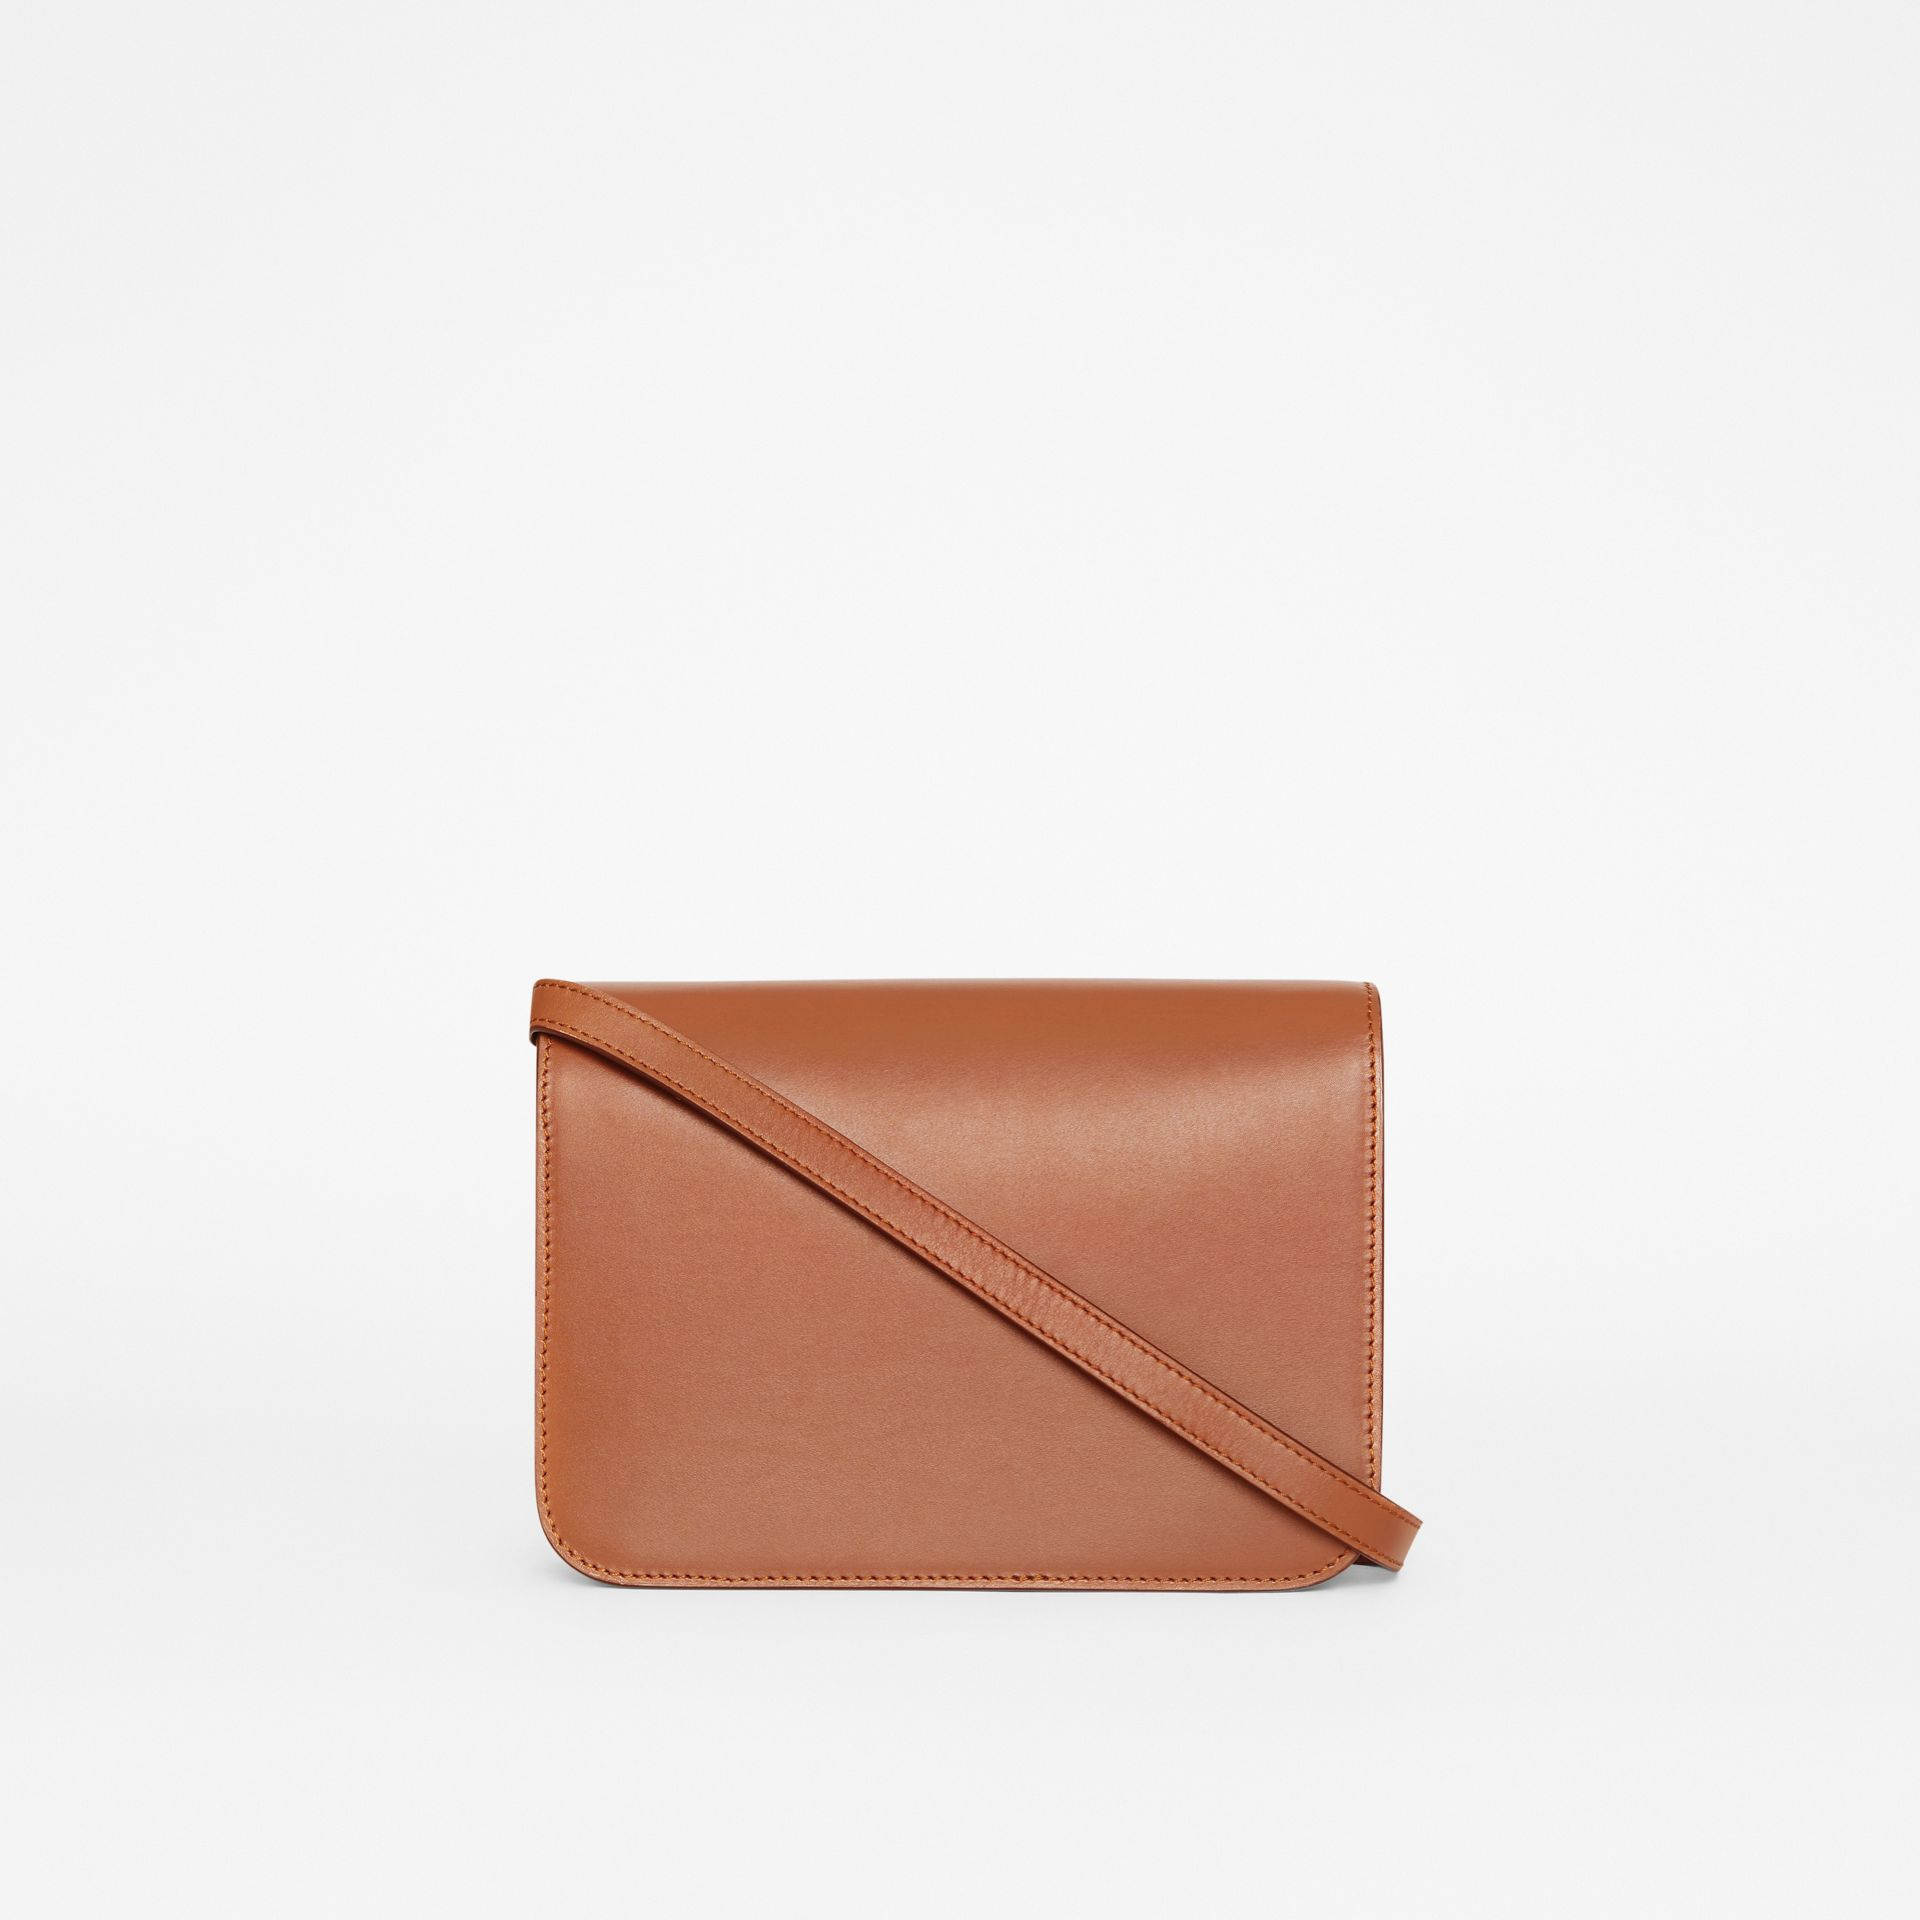 Small Leather TB Bag in Malt Brown - Women | Burberry - gallery image 7